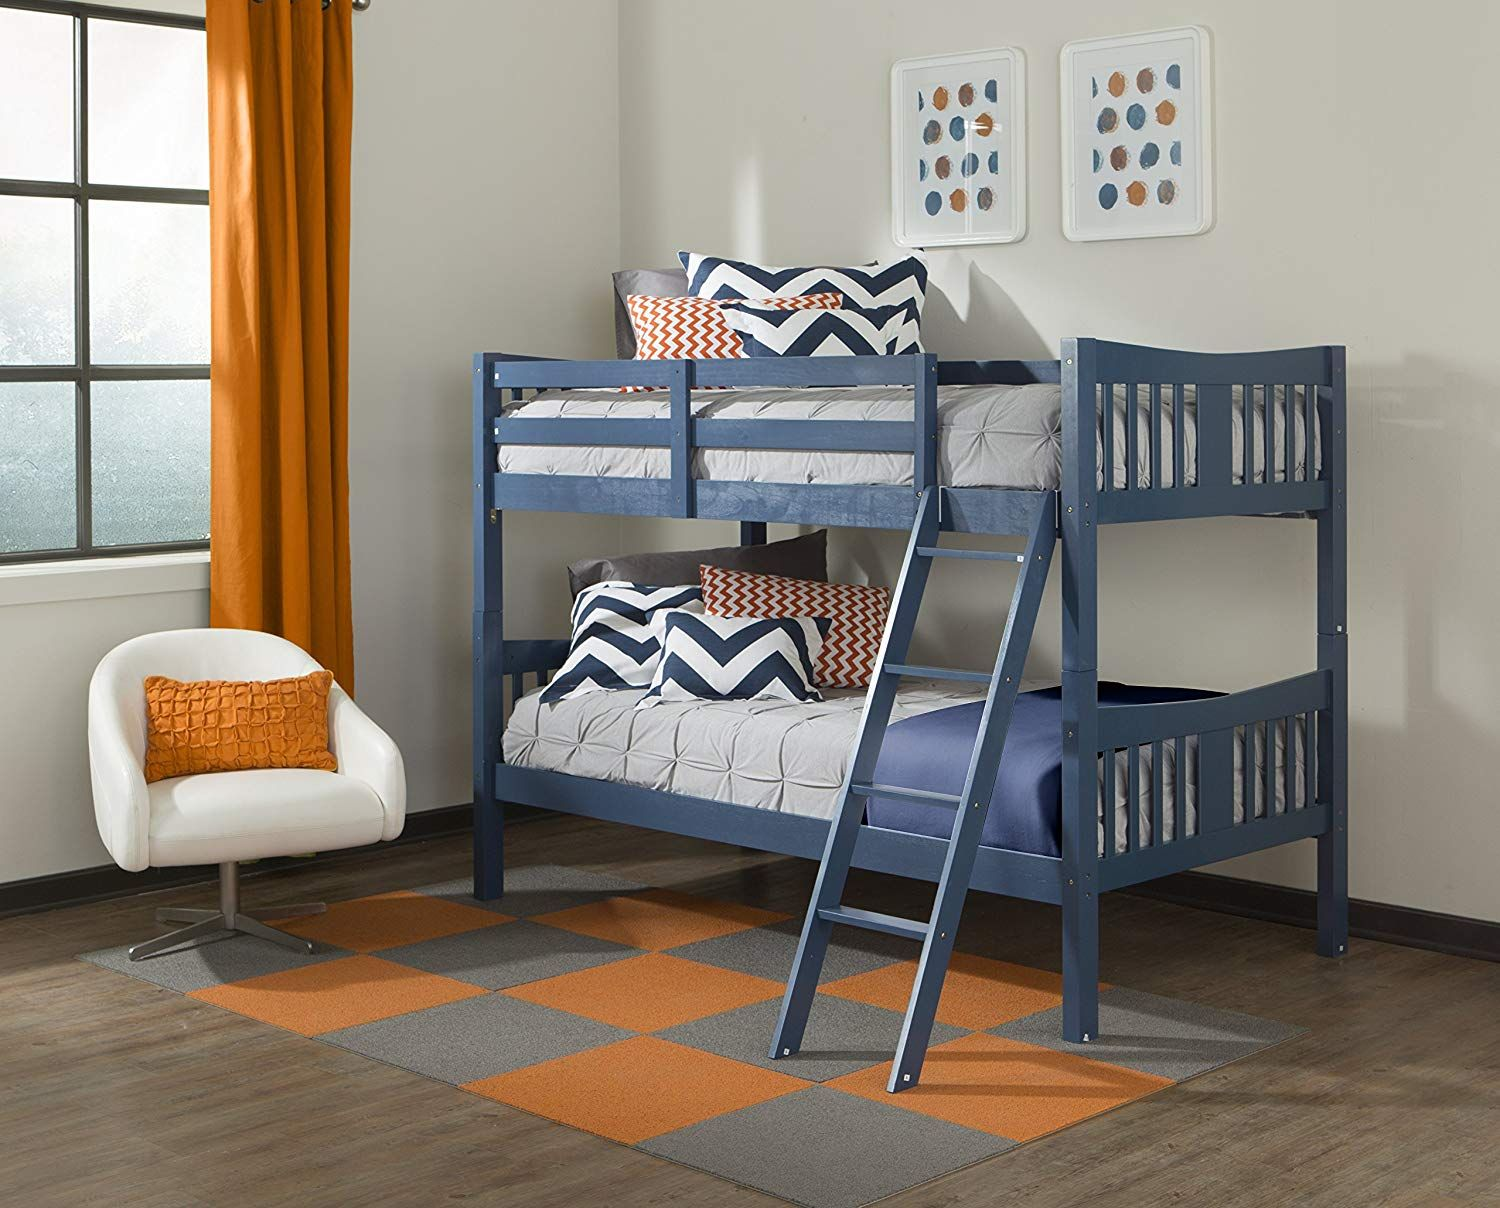 Storkcraft Caribou Solid Hardwood Twin Bunk Bed, Navy Twin Bunk Beds for Kids with Ladder